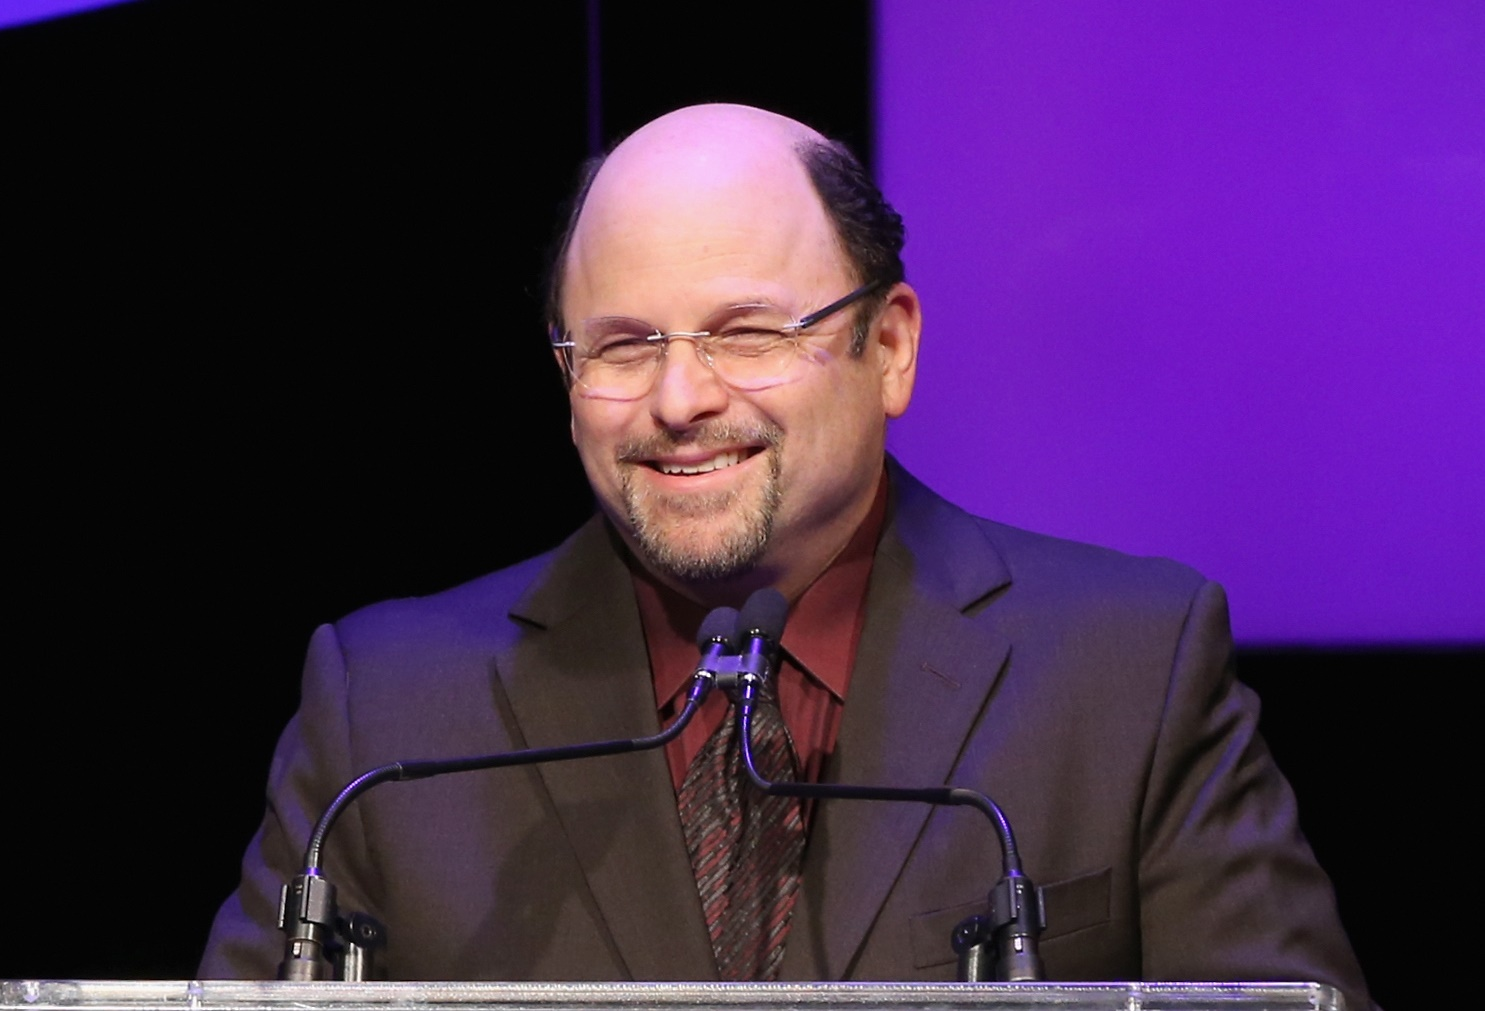 'Seinfeld' character George Costanza, played by Jason Alexander (pictured), infrequently adopted the pseudonym Art Vandelay to deceive unwitting guest characters on the show. (Getty Images)